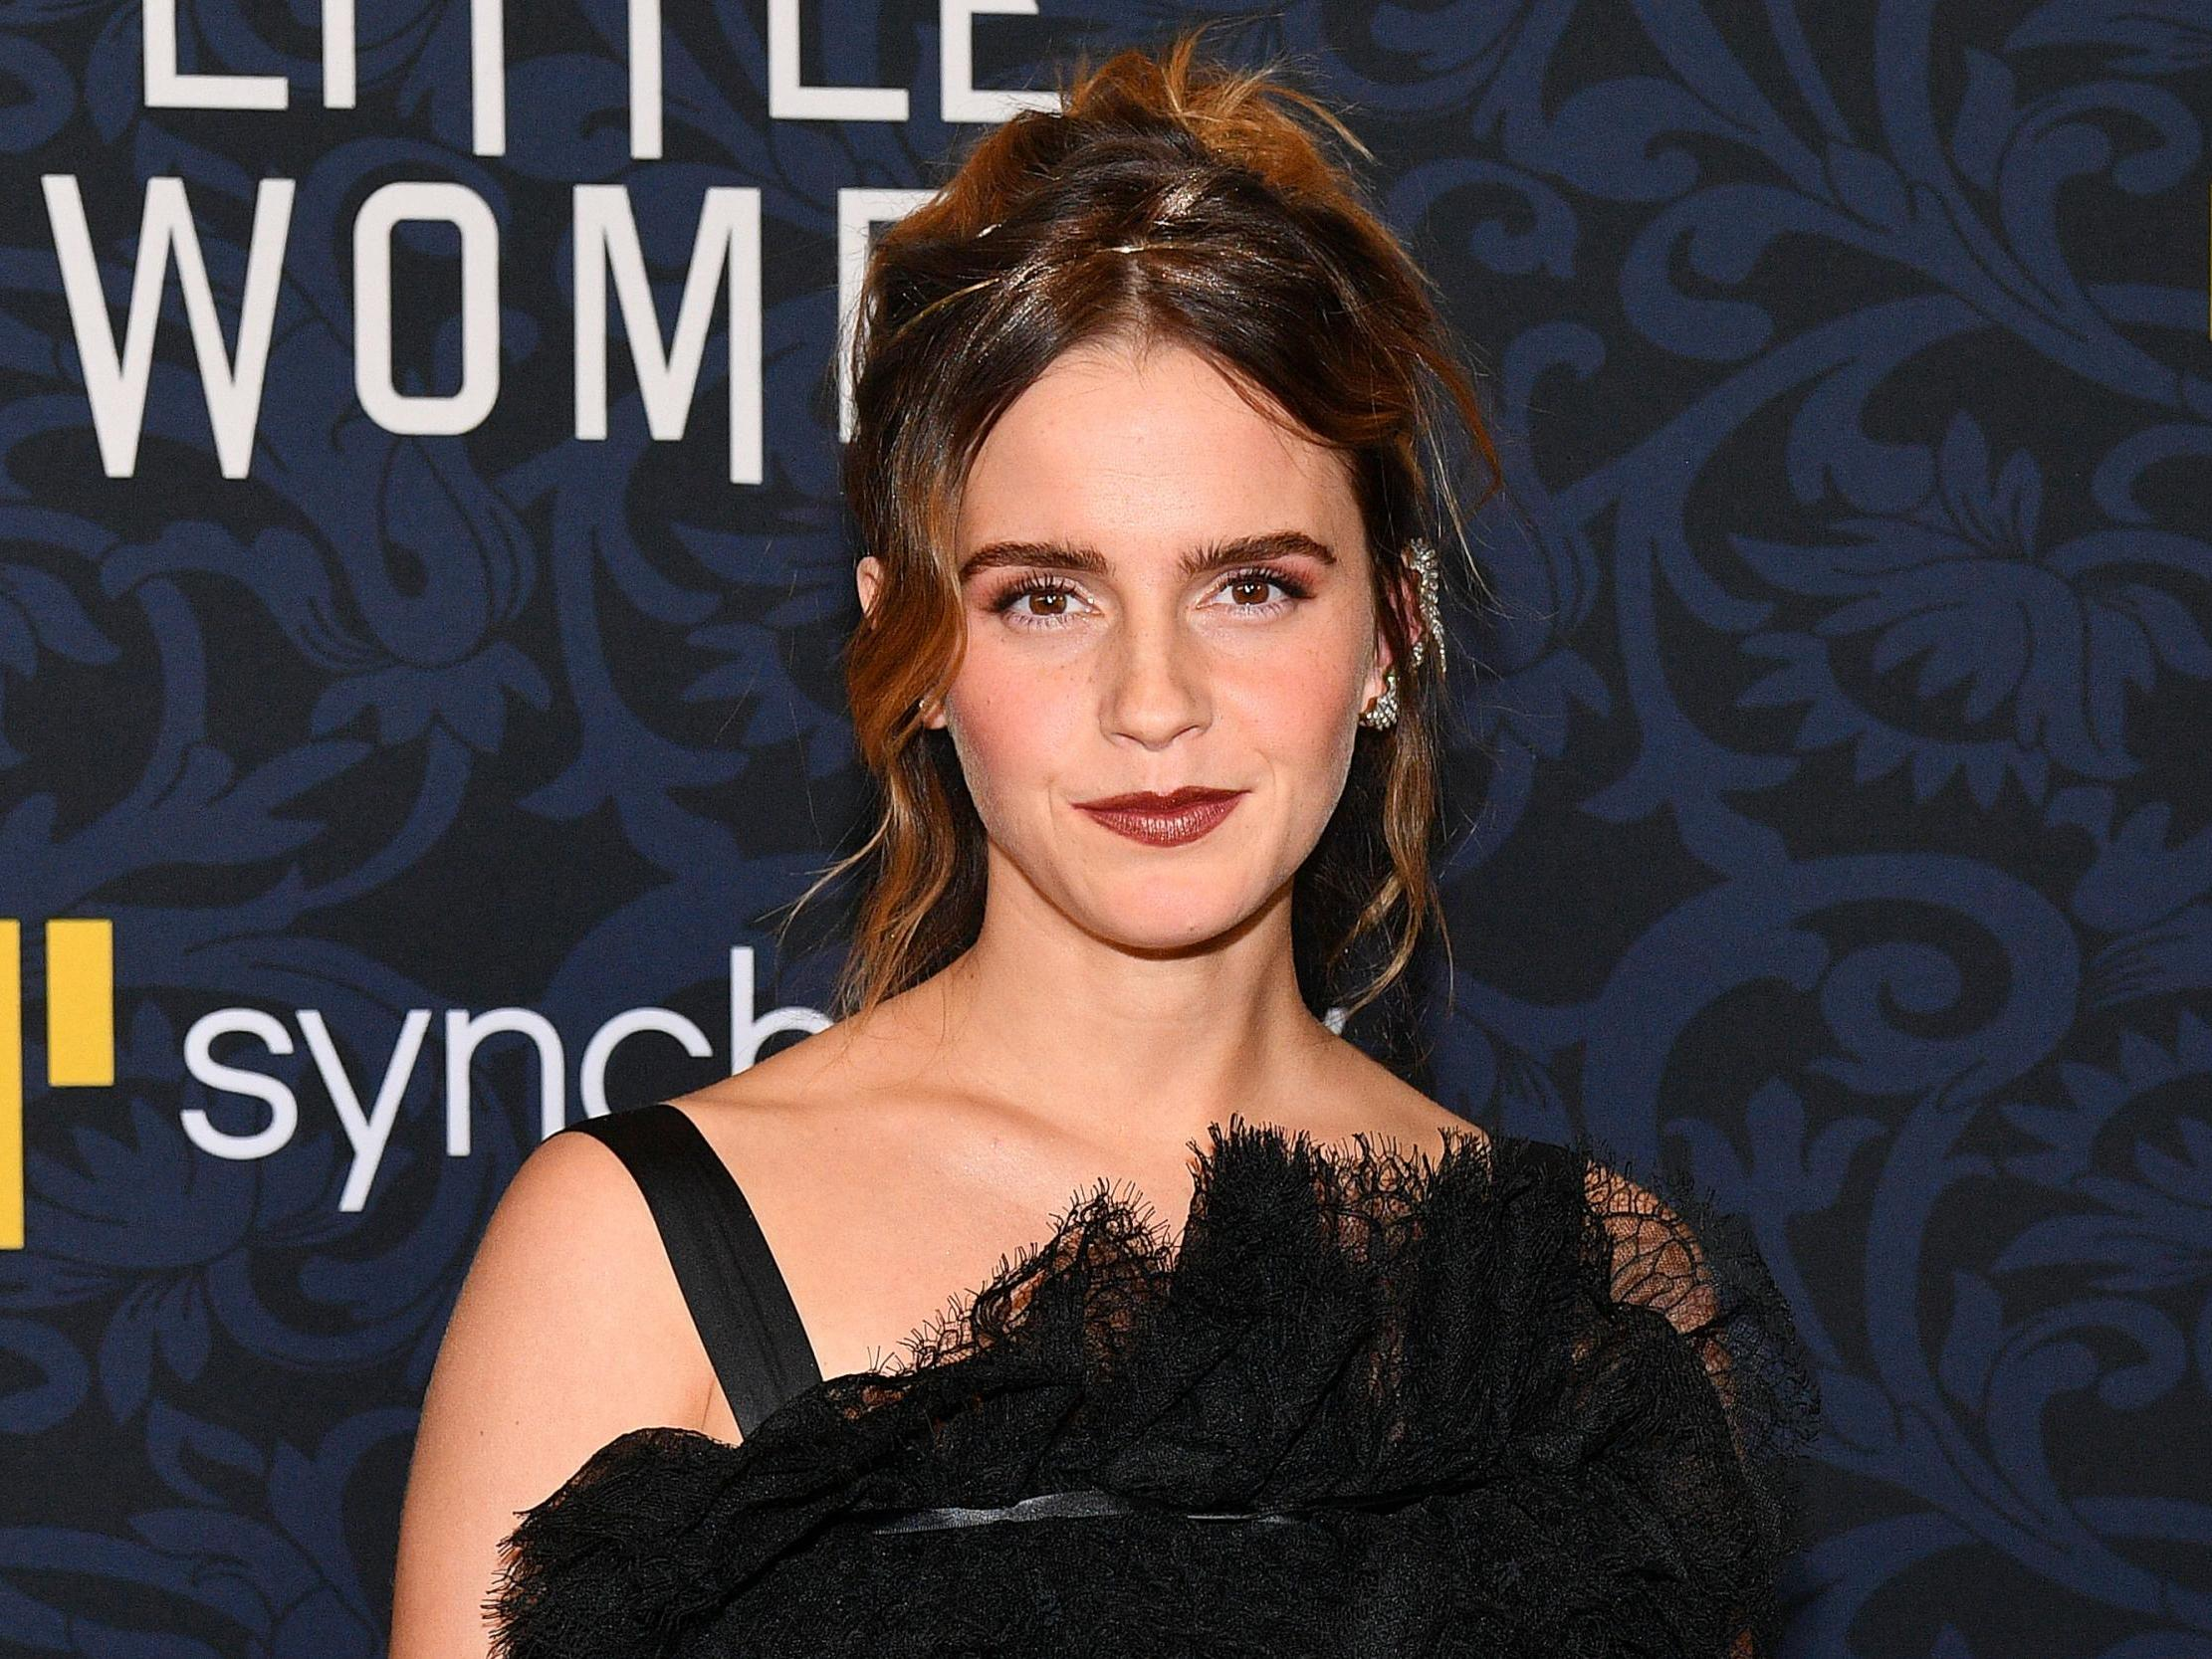 Emma Watson admits she 'needs to work harder' following Blackout Tuesday backlash